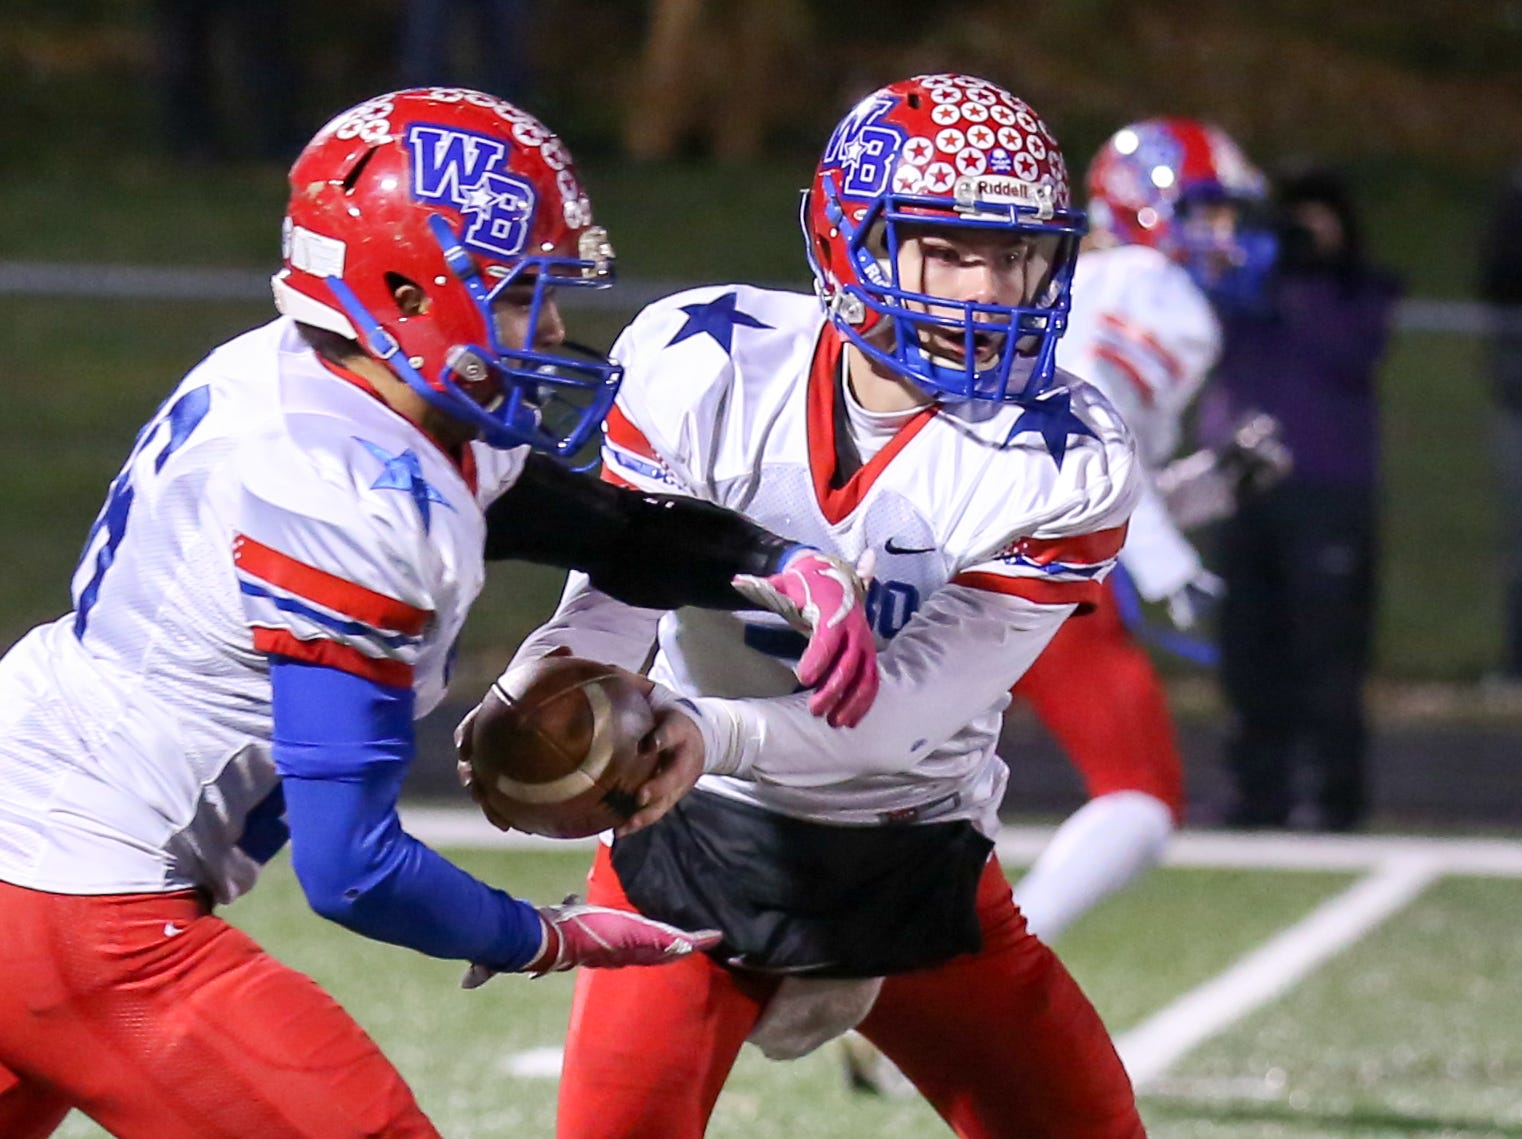 Western Boone's Spencer Wright (7)  hands off to Western Boone's Kruze Washingto (36) during the first half of Indianapolis Scecina vs Western Boone High School varsity football in the Class 2A Regional Championship held at Roncalli High School, Friday, November 9, 2018.